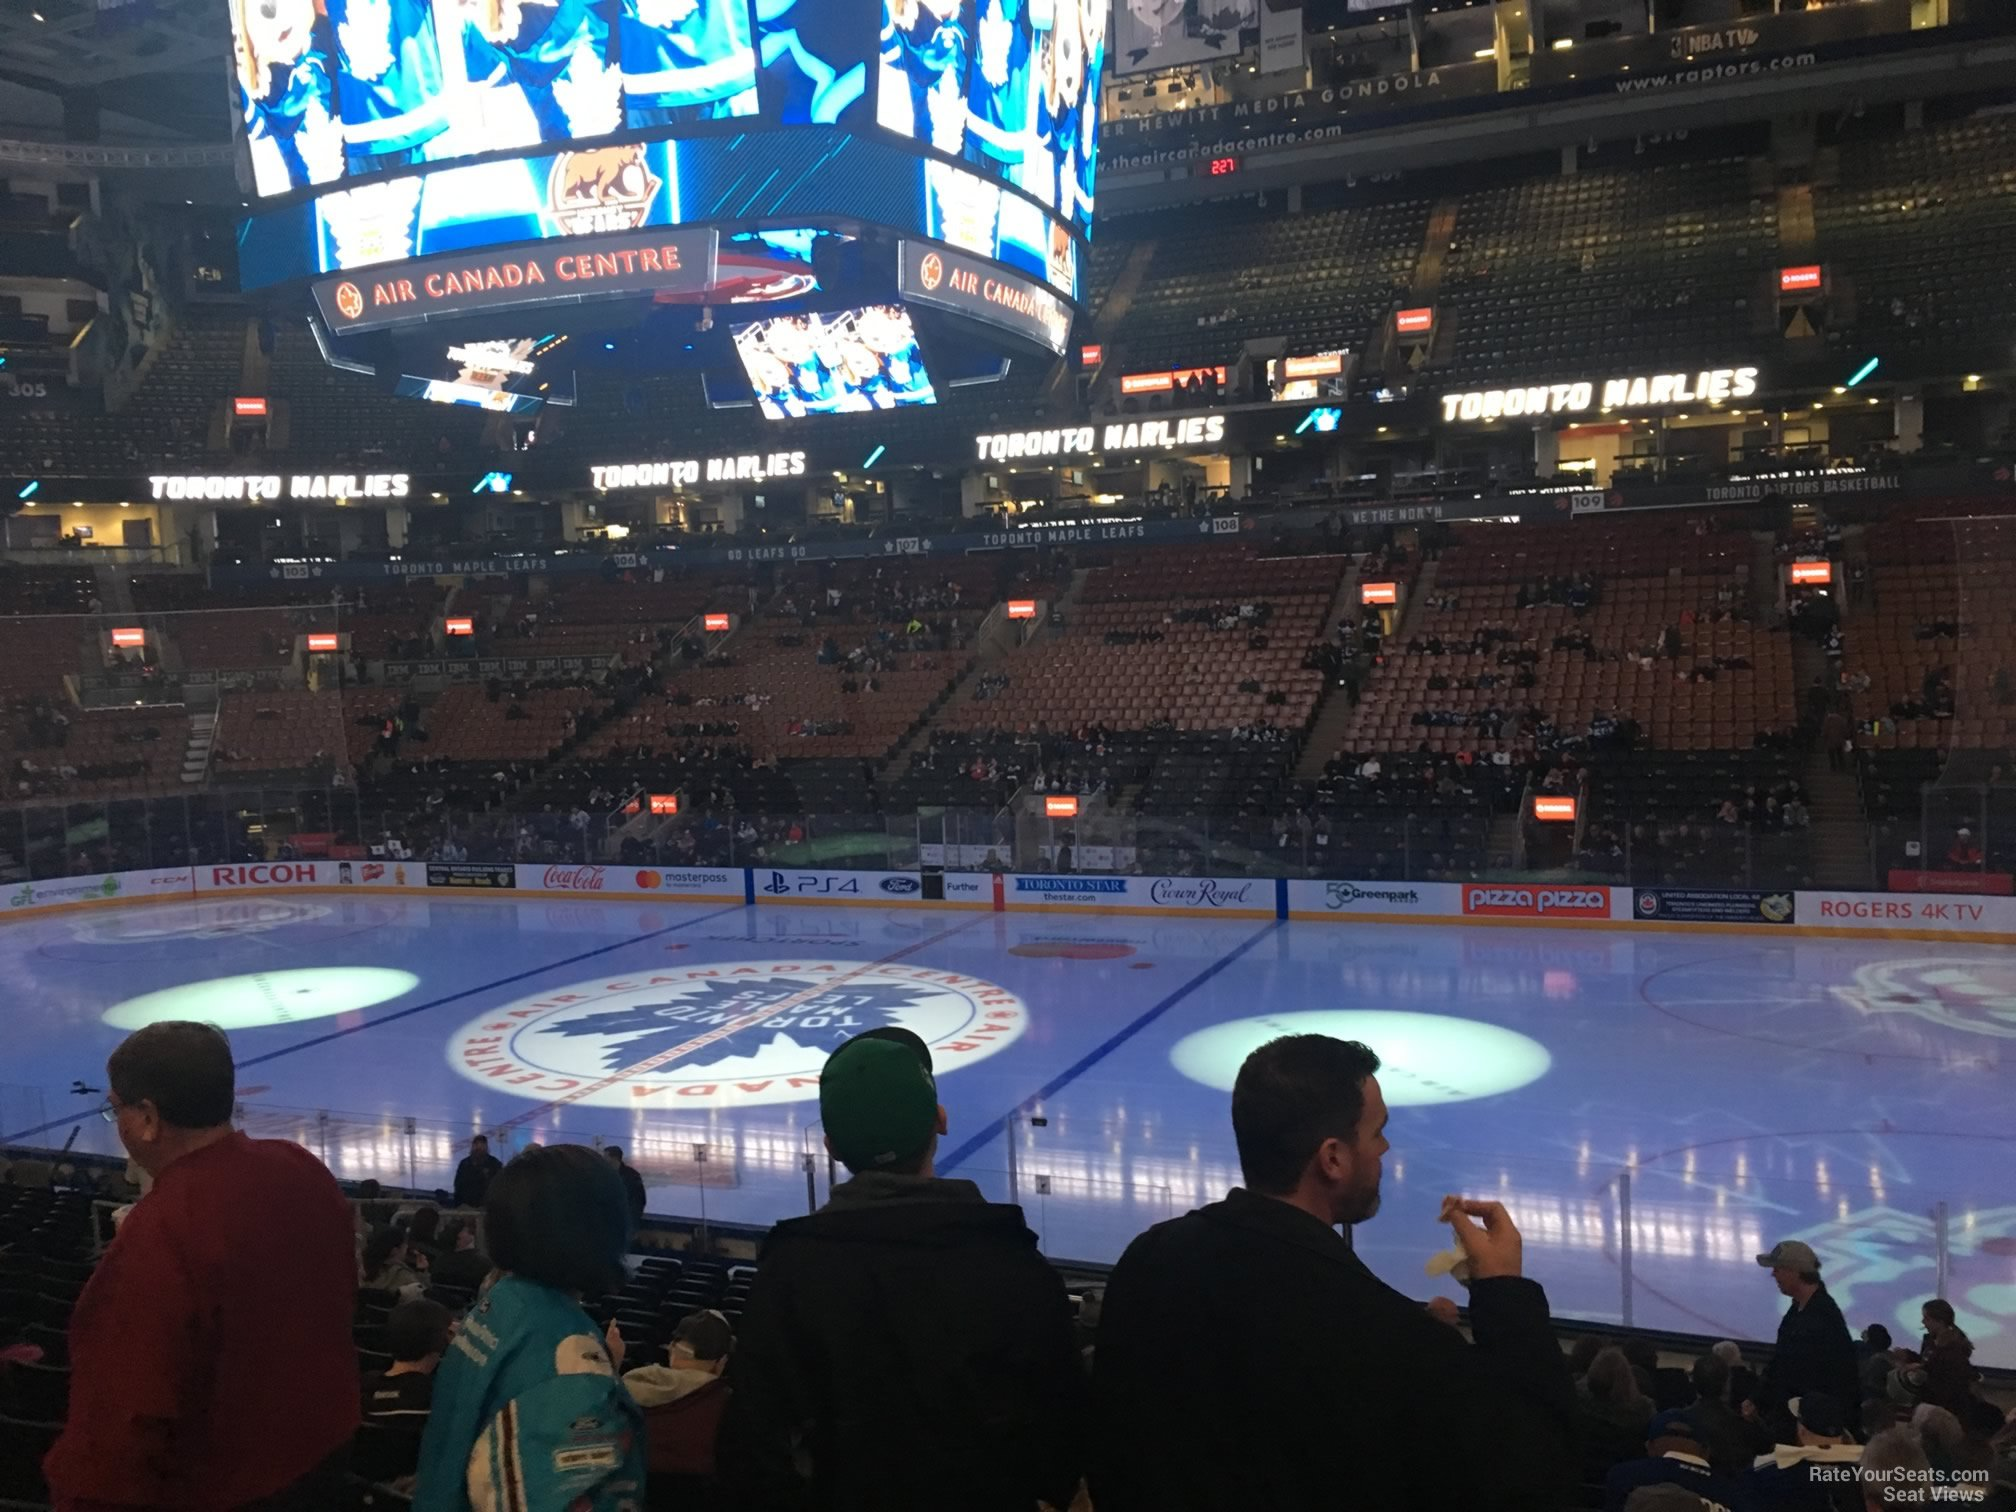 Toronto Maple Leafs Seat View for Scotiabank Arena Section 118, Row 20